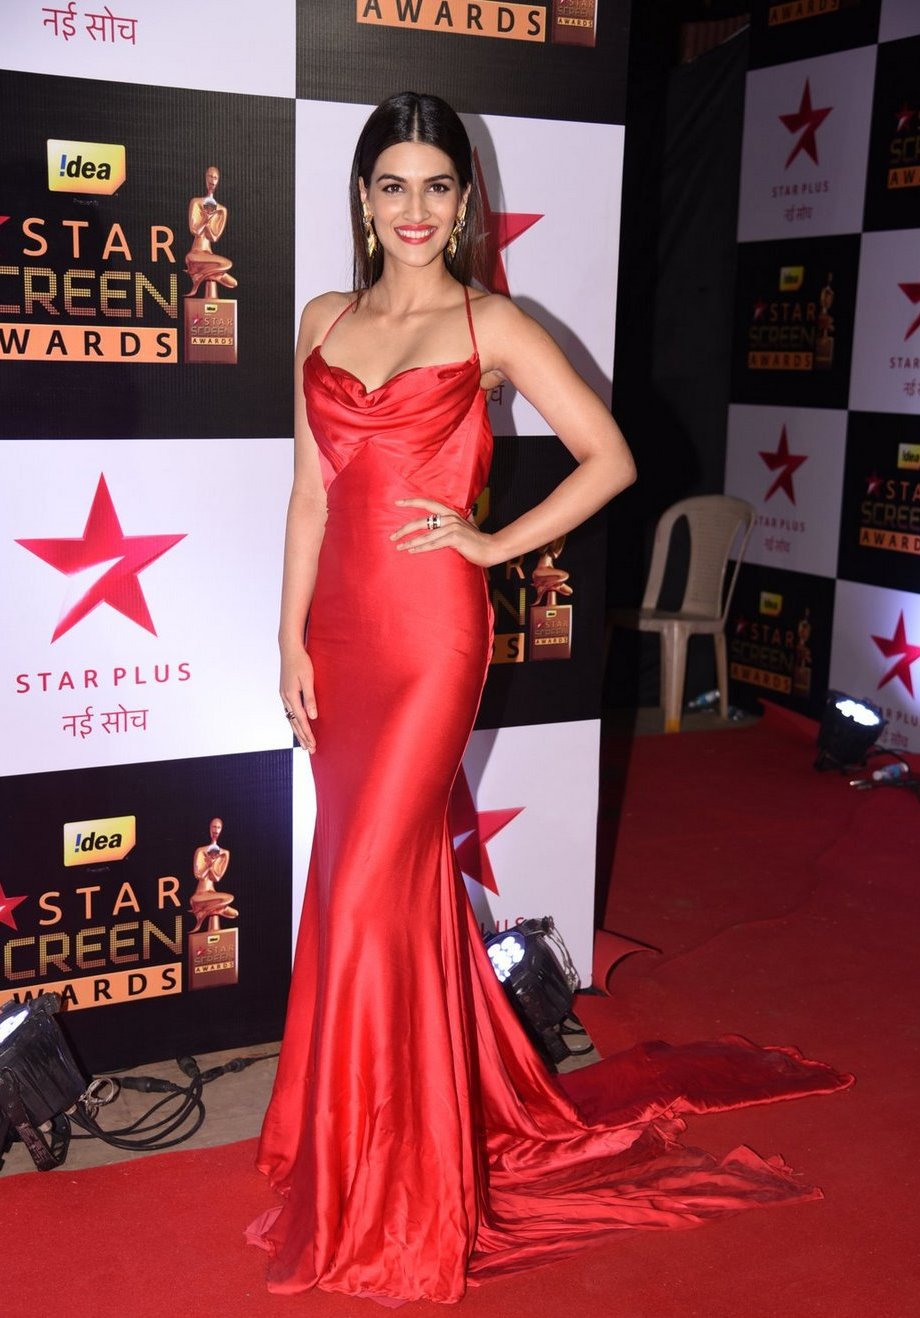 Model Kriti Sanon Hot Big teeths Photos In Red Dress